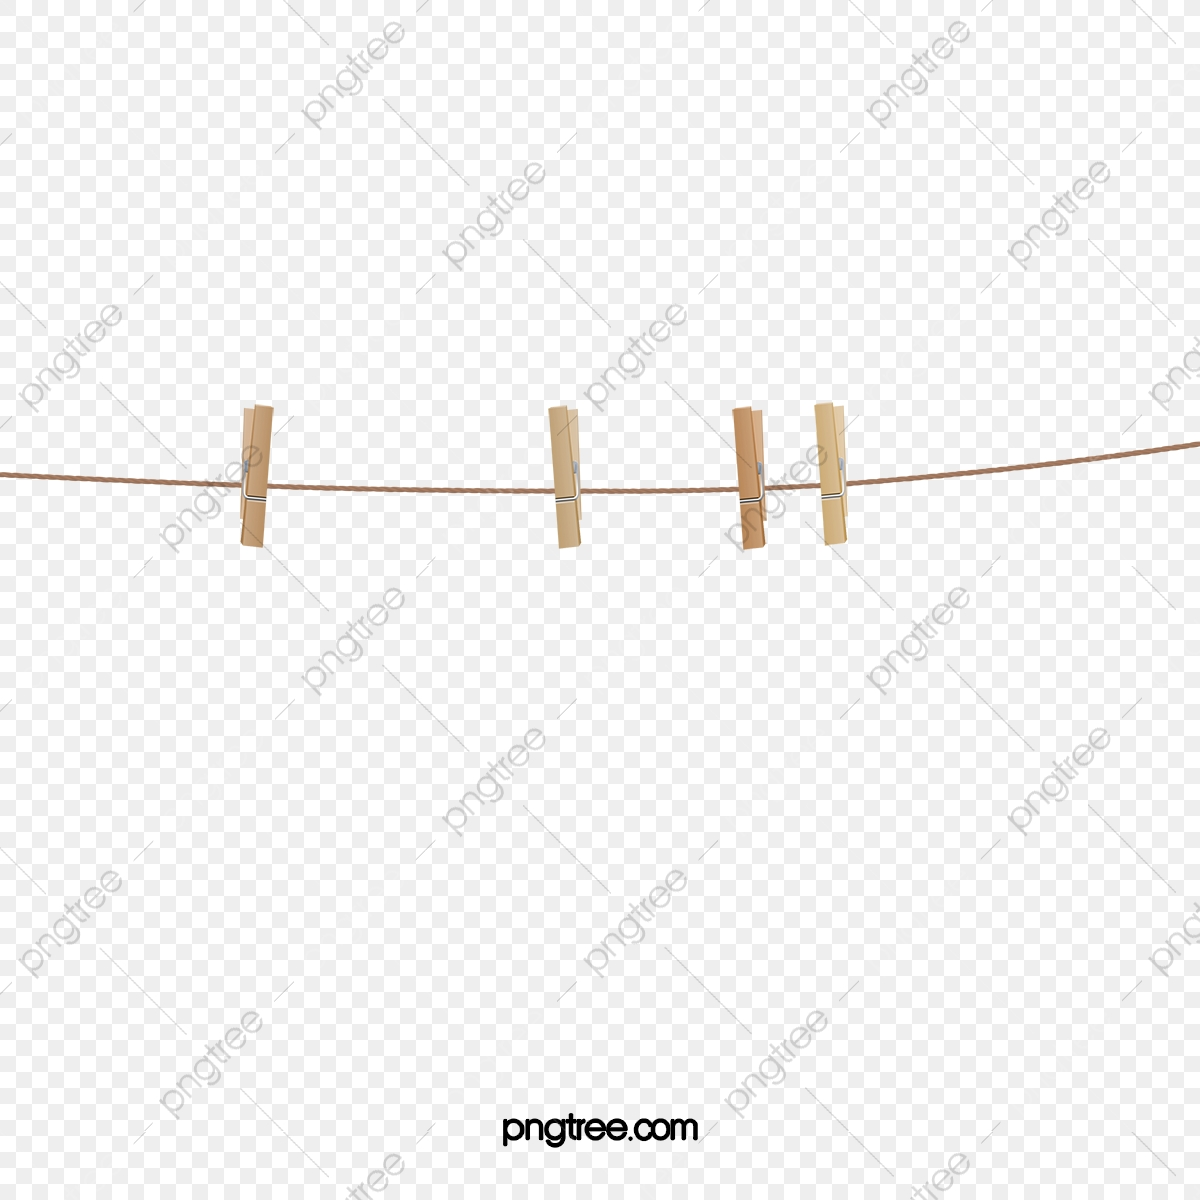 Brown Wooden Rope Clips, Rope Clipart, Brown Rope, Brown.